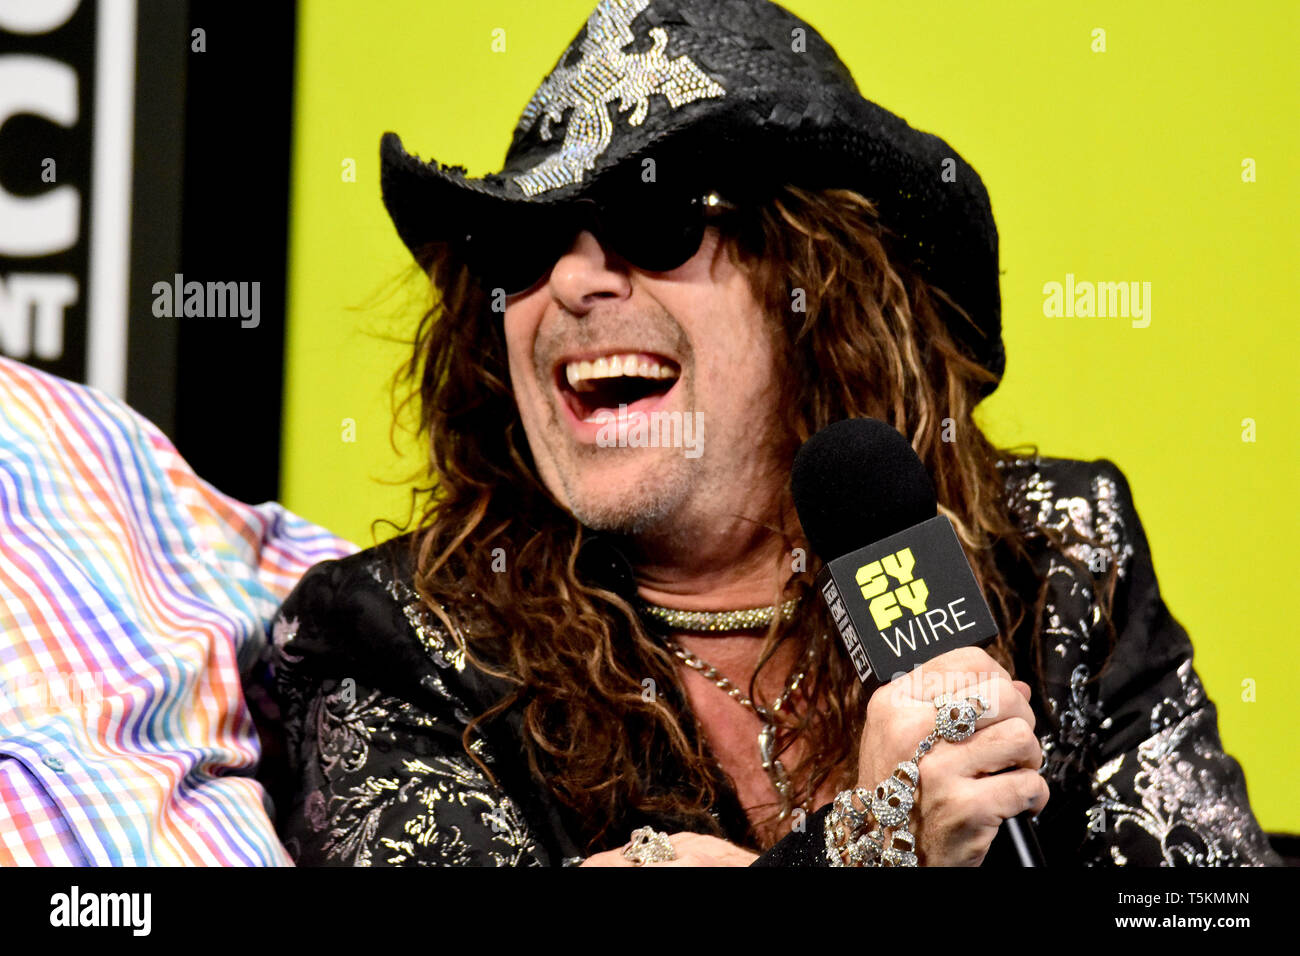 Jess Harnell Stock Photos & Jess Harnell Stock Images - Alamy